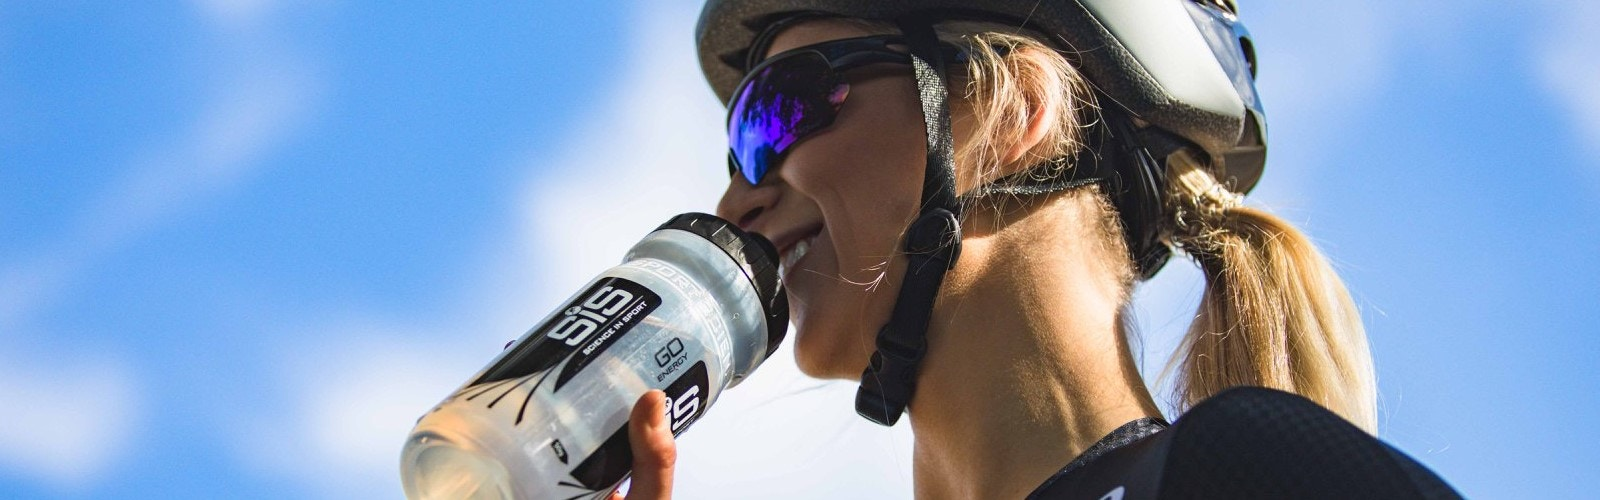 SIS - The importance of hydration